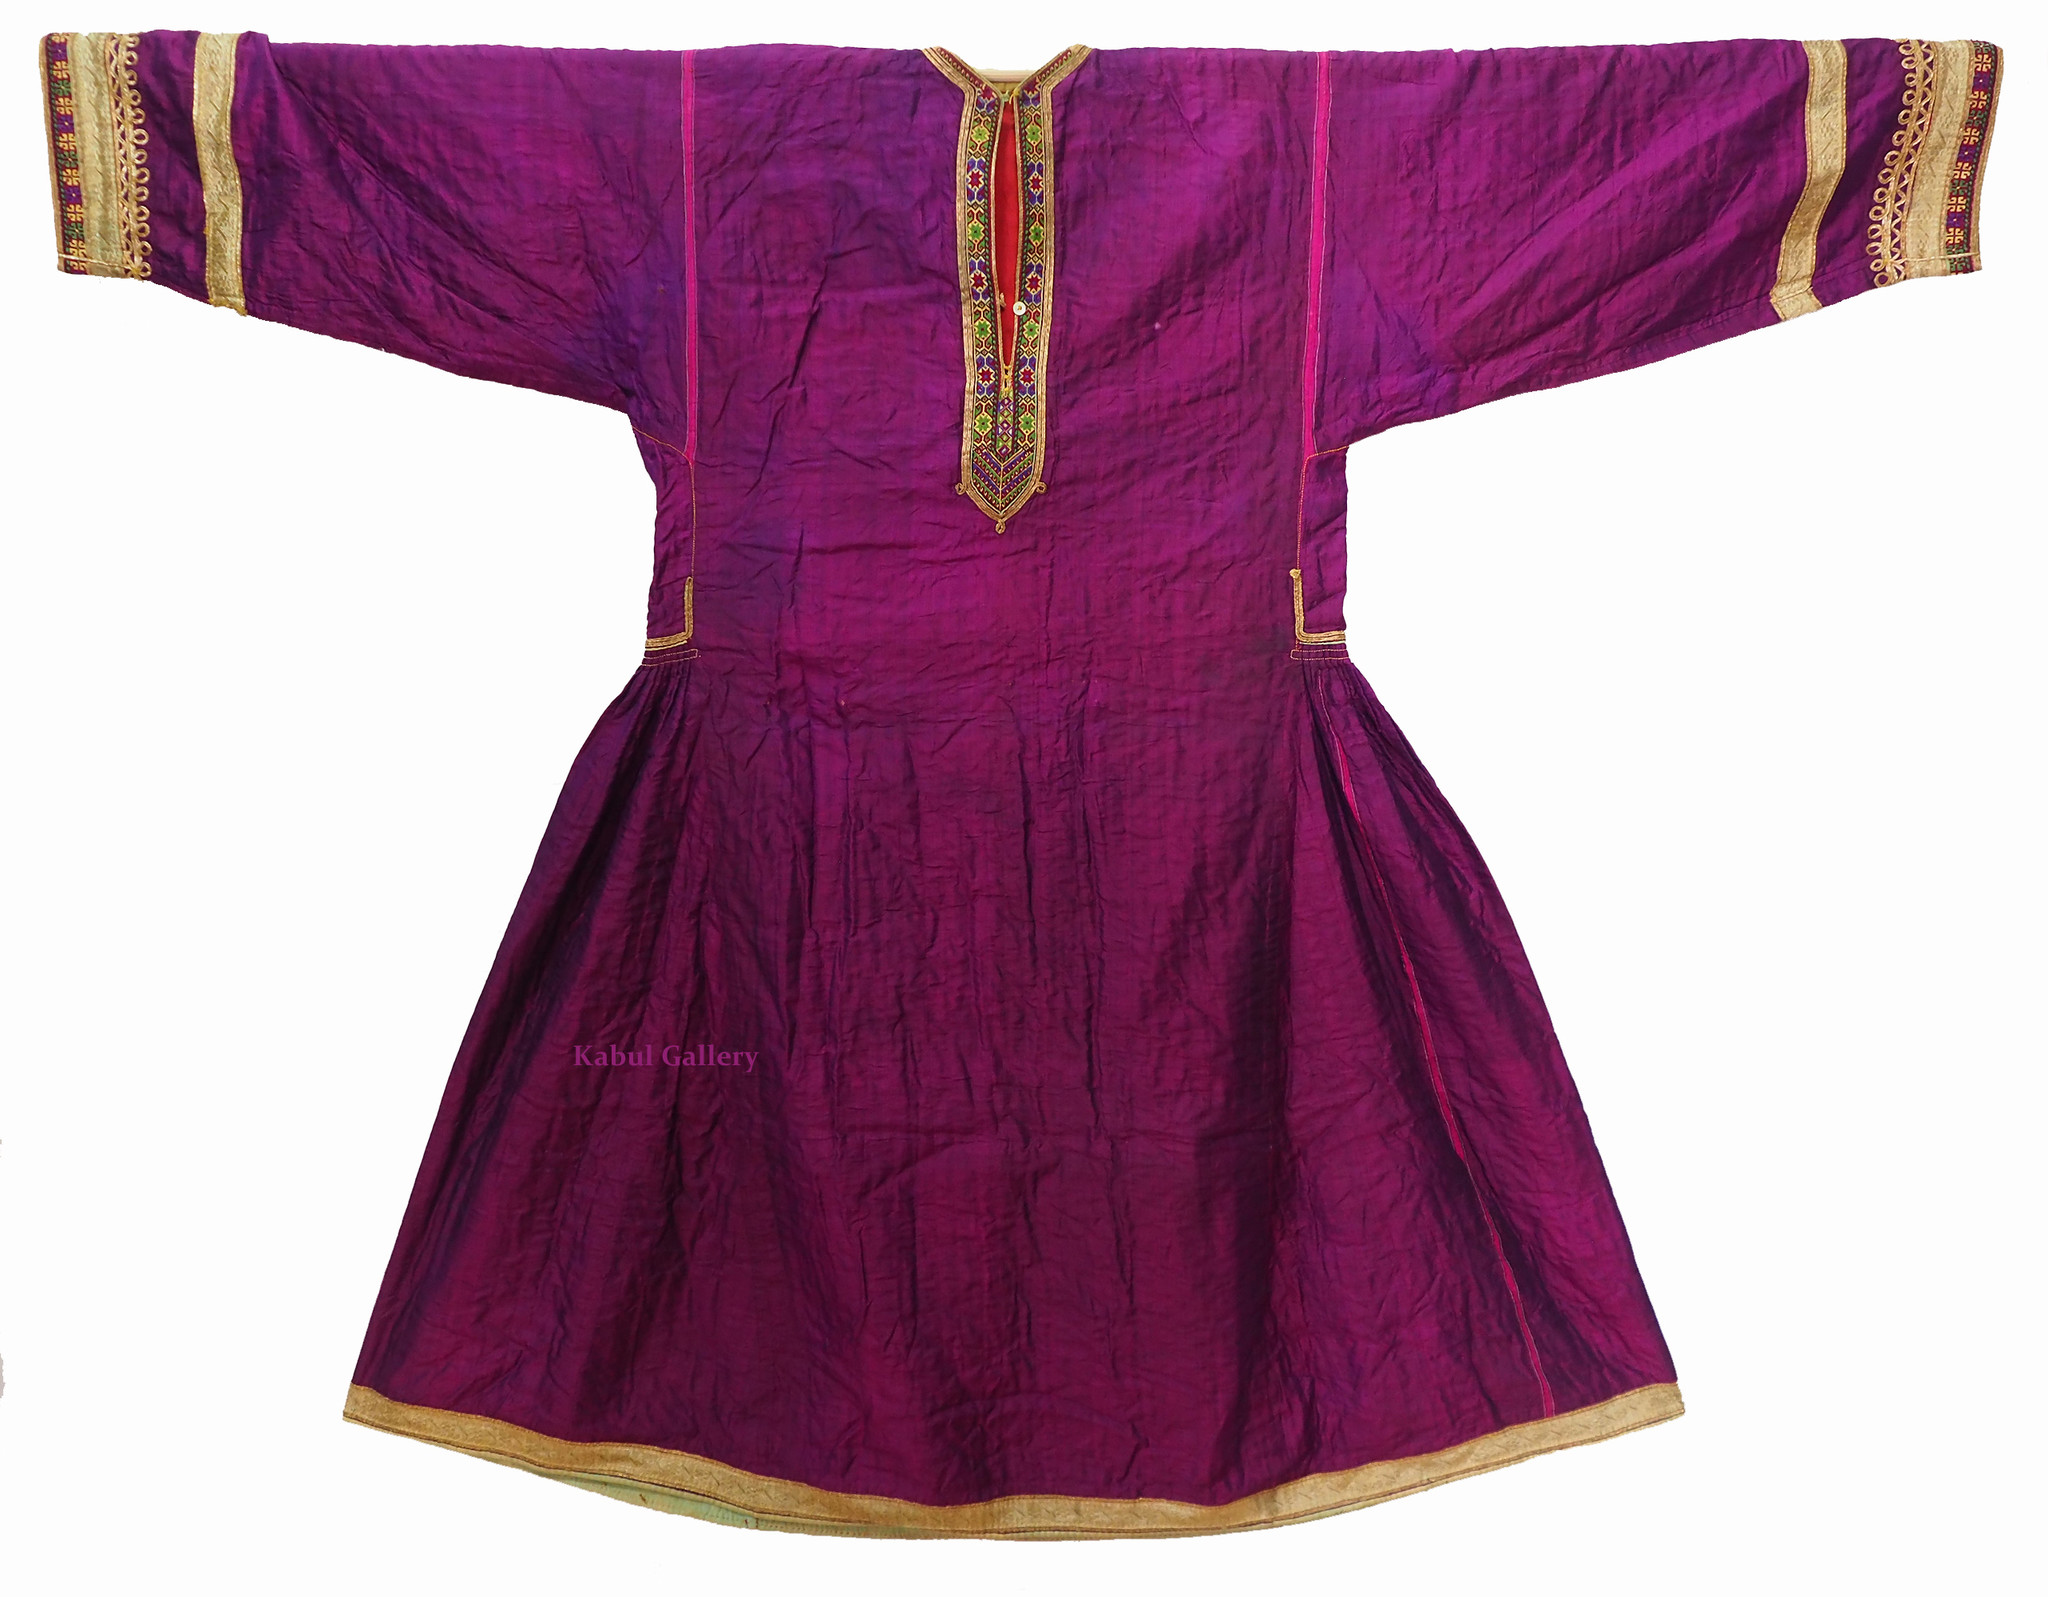 antique hand embroidered nomadic Kuchi Ethnic silk wedding dress from Afghanistan No-21/7